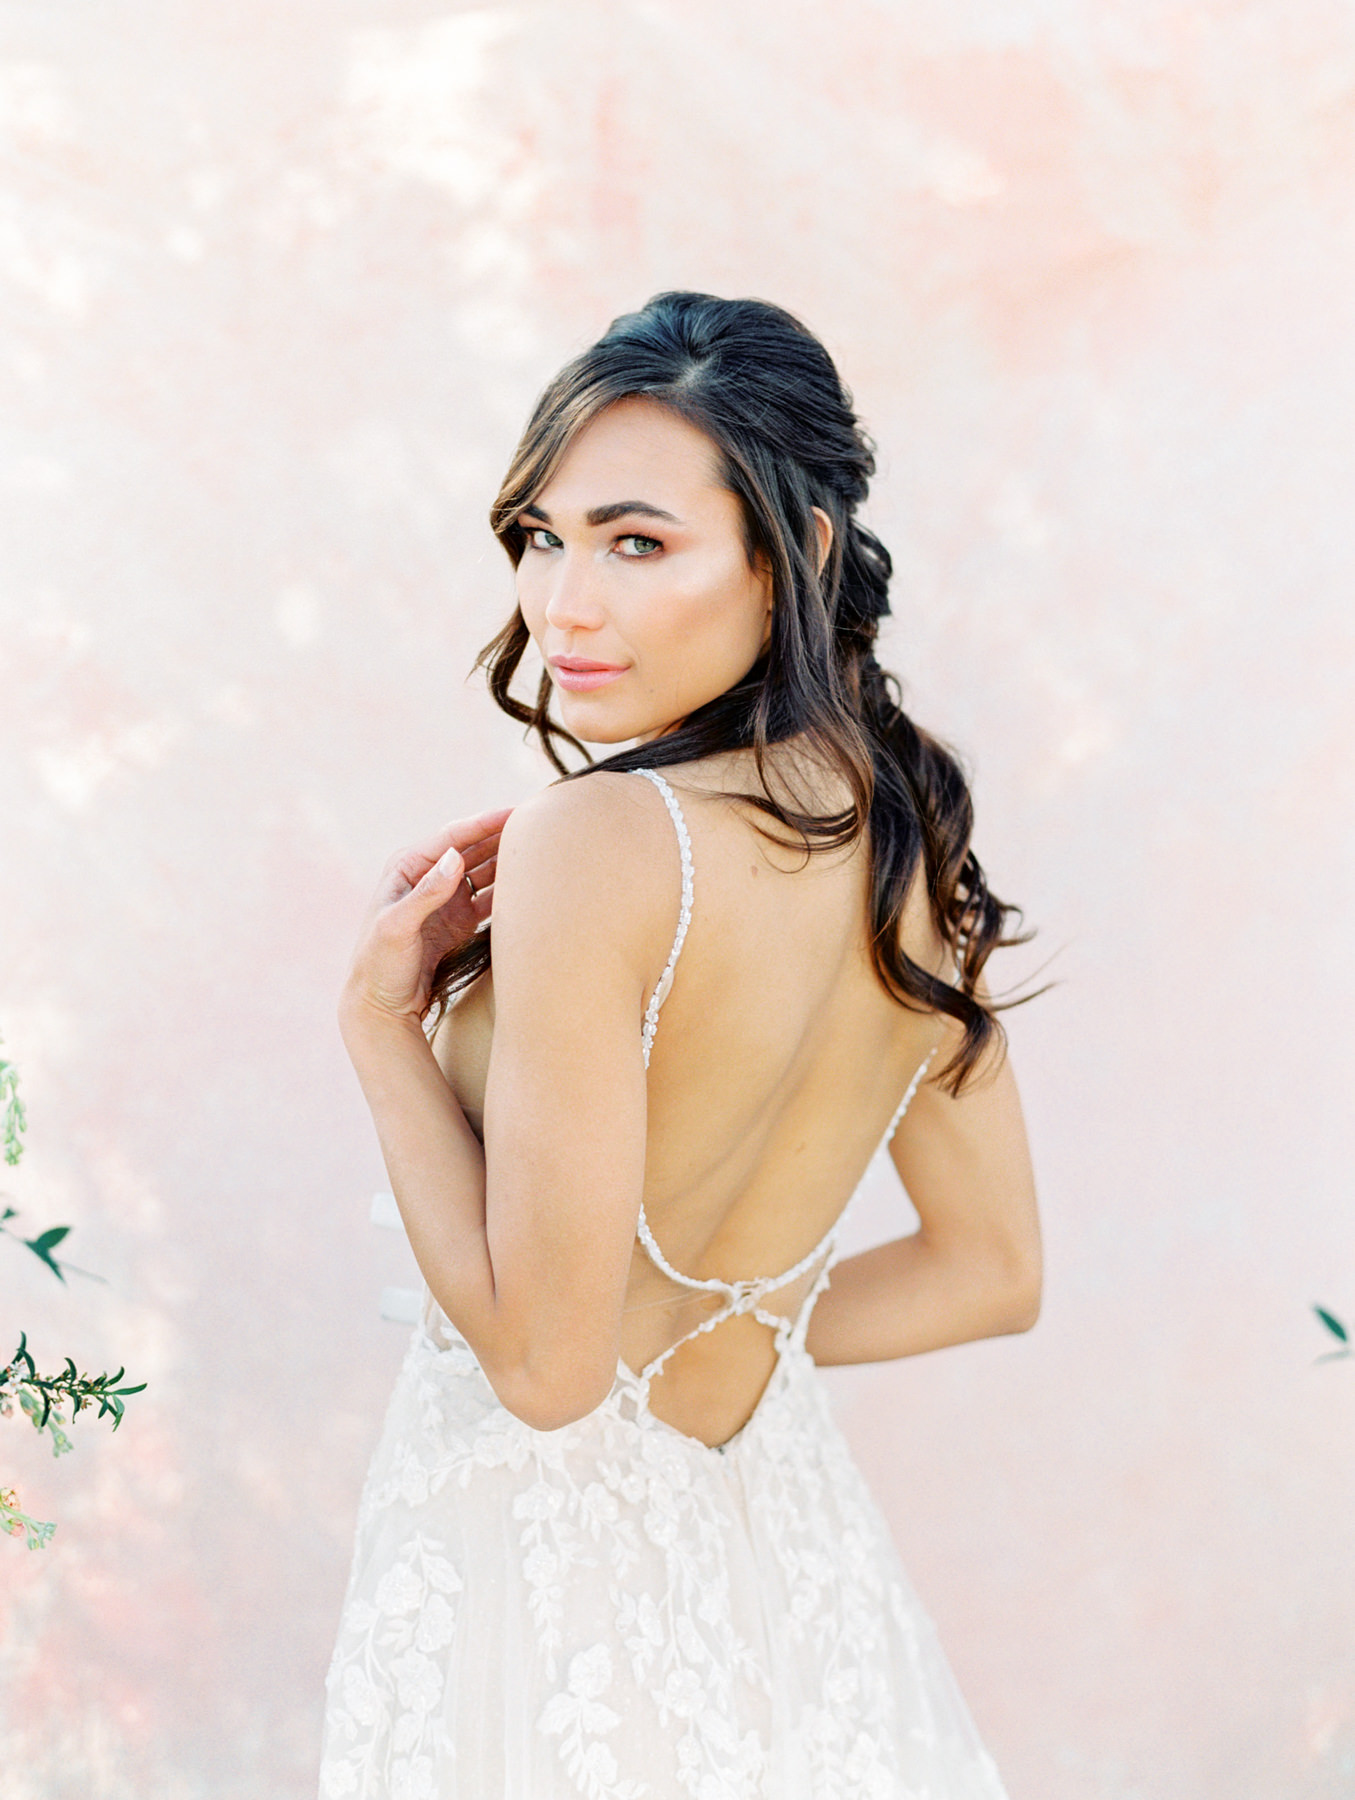 Pink painterly backdrop. Martina Liana 1137 (Delicately beaded shoestring straps, V-neckline. V-sides and sheer bodice, laces featuring a mix of vine-like and floral patterns) gown from The White Flower. Hair half up and curled with dainty floral Brides and Hairpins comb. Cavin Elizabeth Photography - film photographer in San Diego.